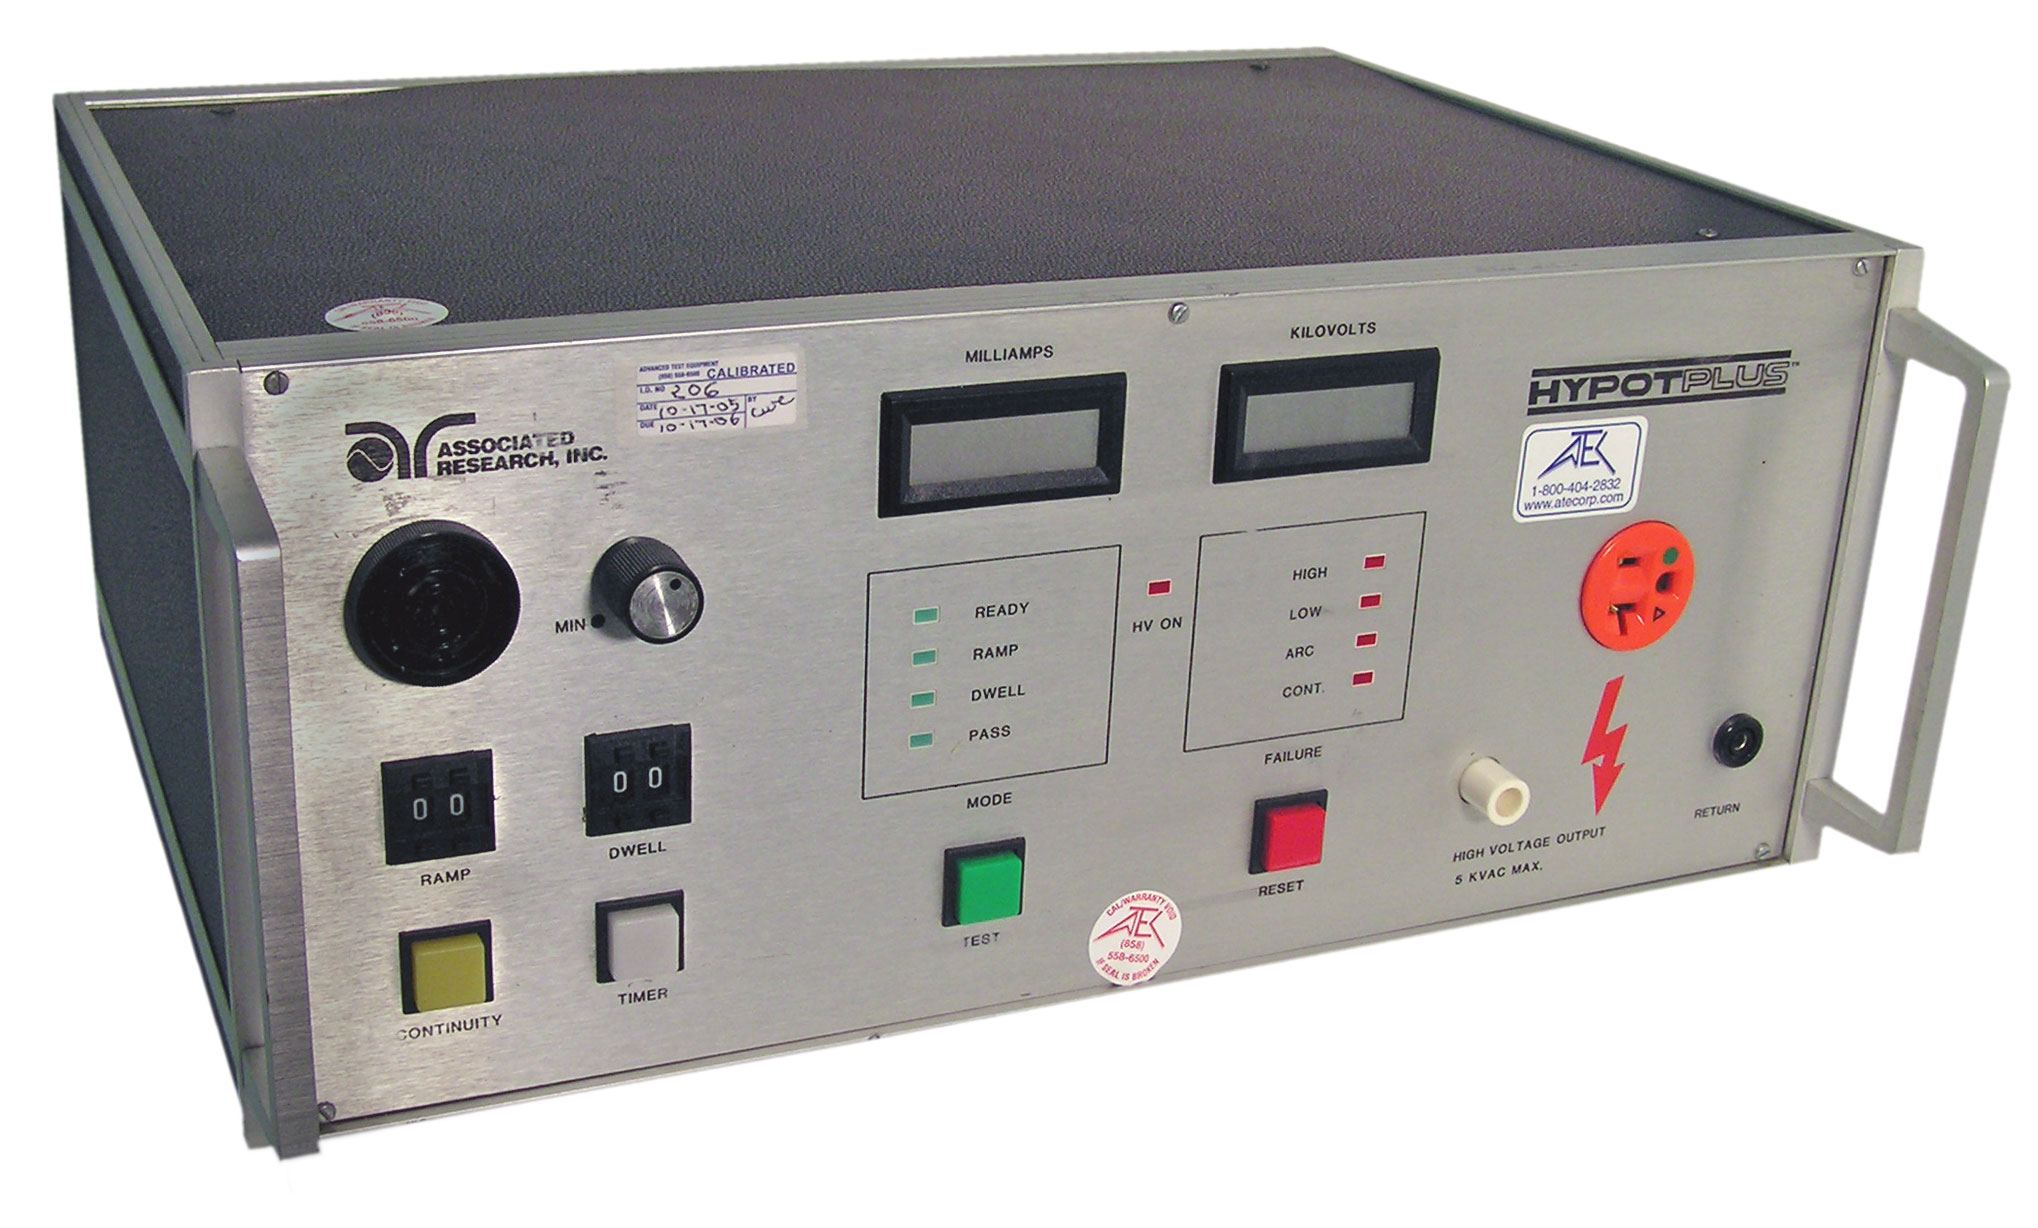 Associated Research 5400DT HypotPLUS AC Dielectric Withstand Tester